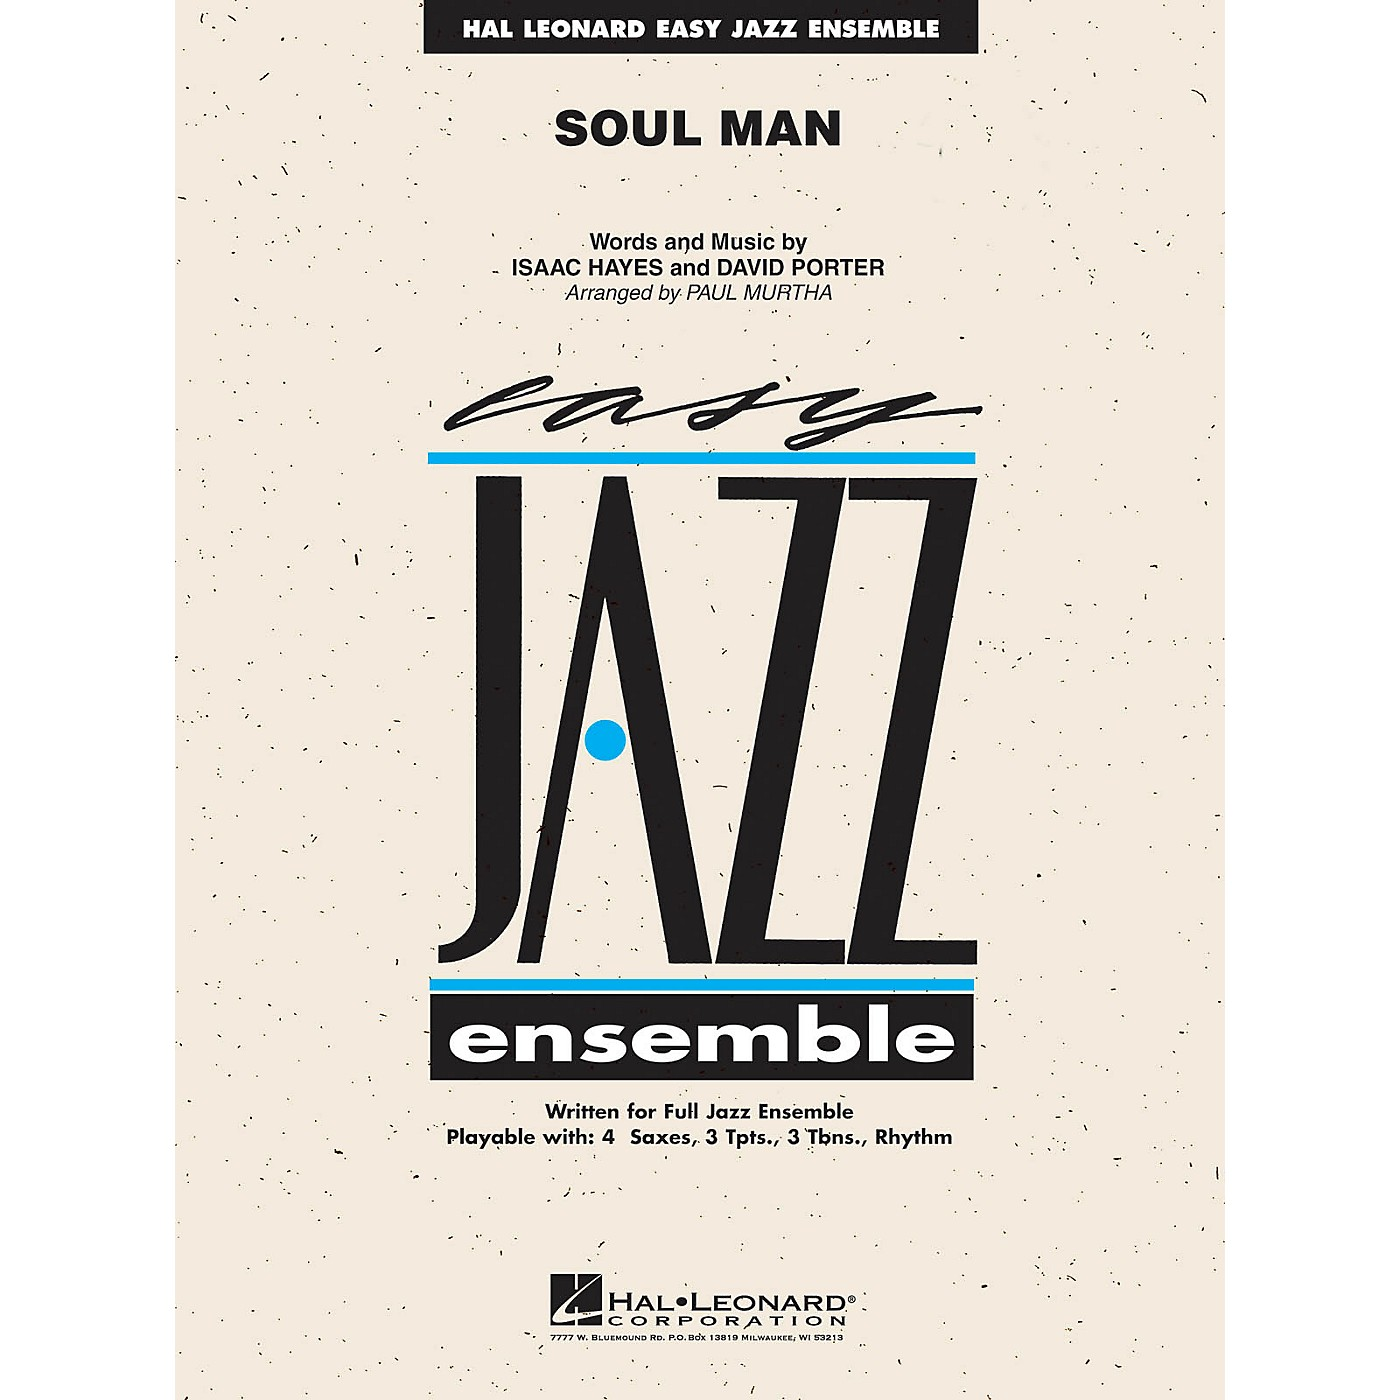 Hal Leonard Soul Man (Includes Online Audio Backing Tracks) Jazz Band Level 2 Arranged by Paul Murtha thumbnail